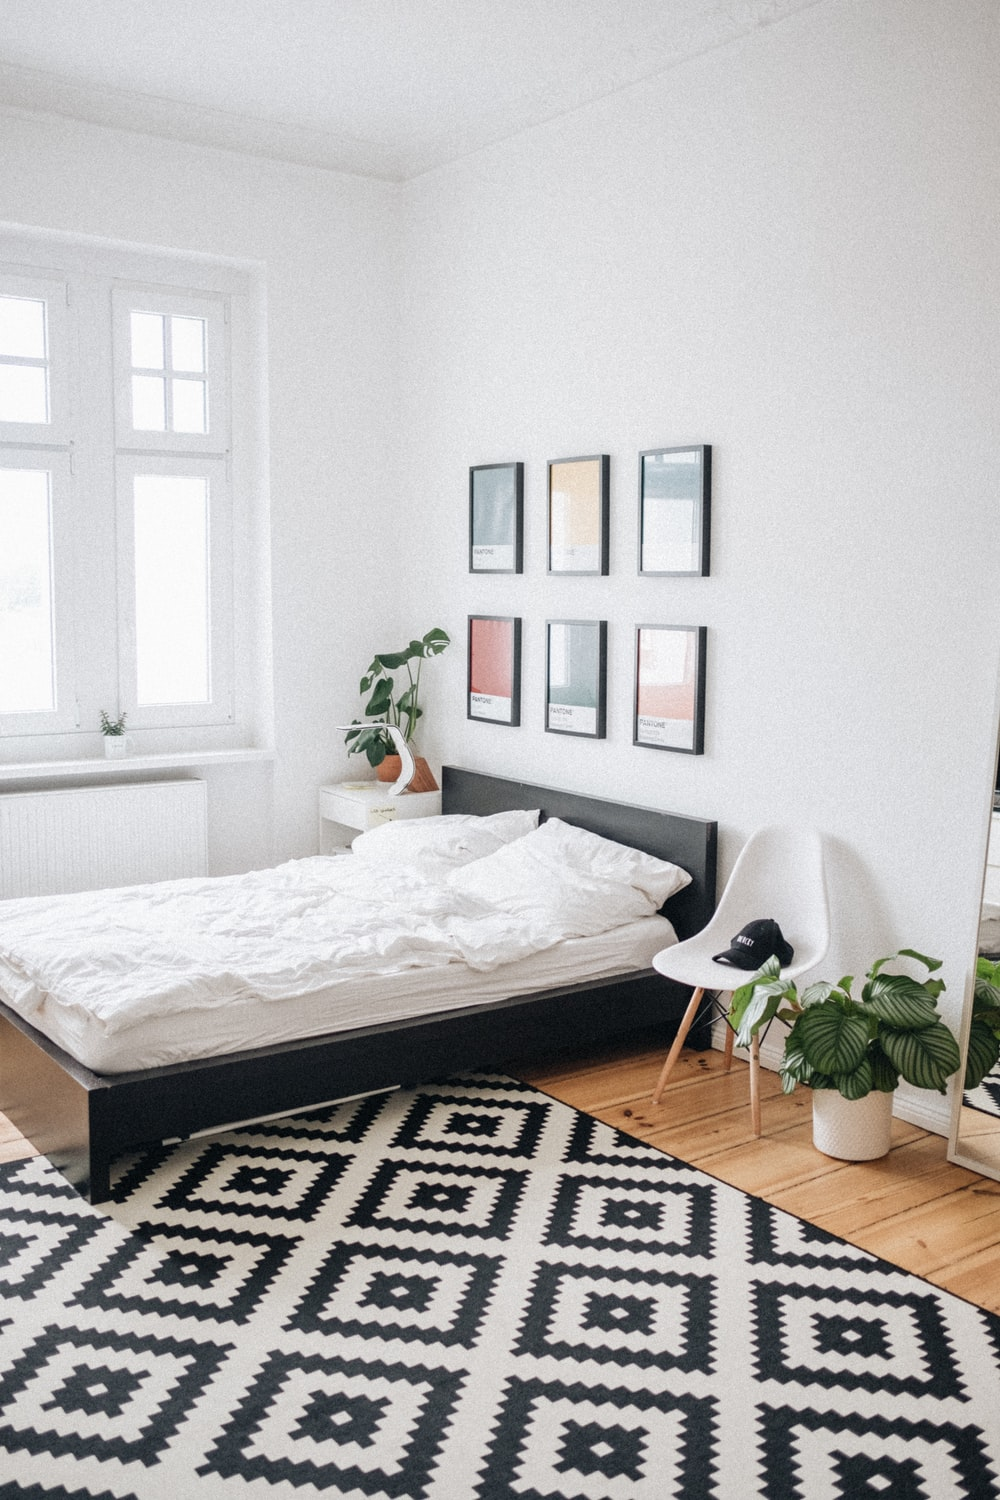 Room Design Free: Black Platform Bed With White Mattress Inside Bedroom